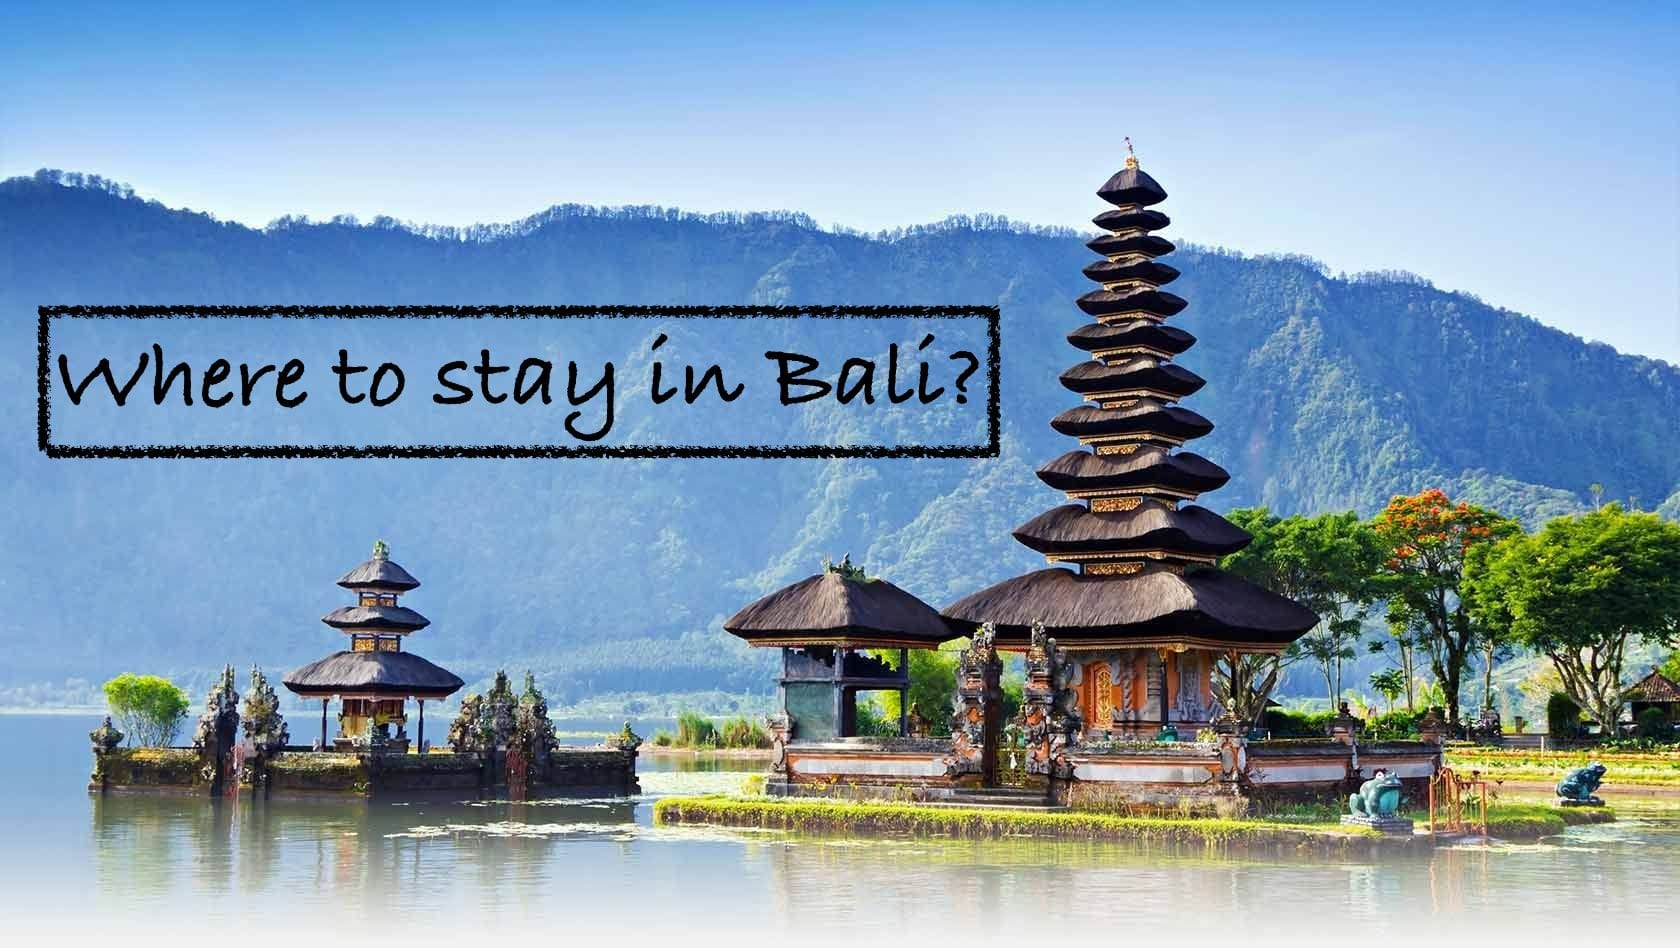 Where to stay in bali indonesia for Bali places to stay